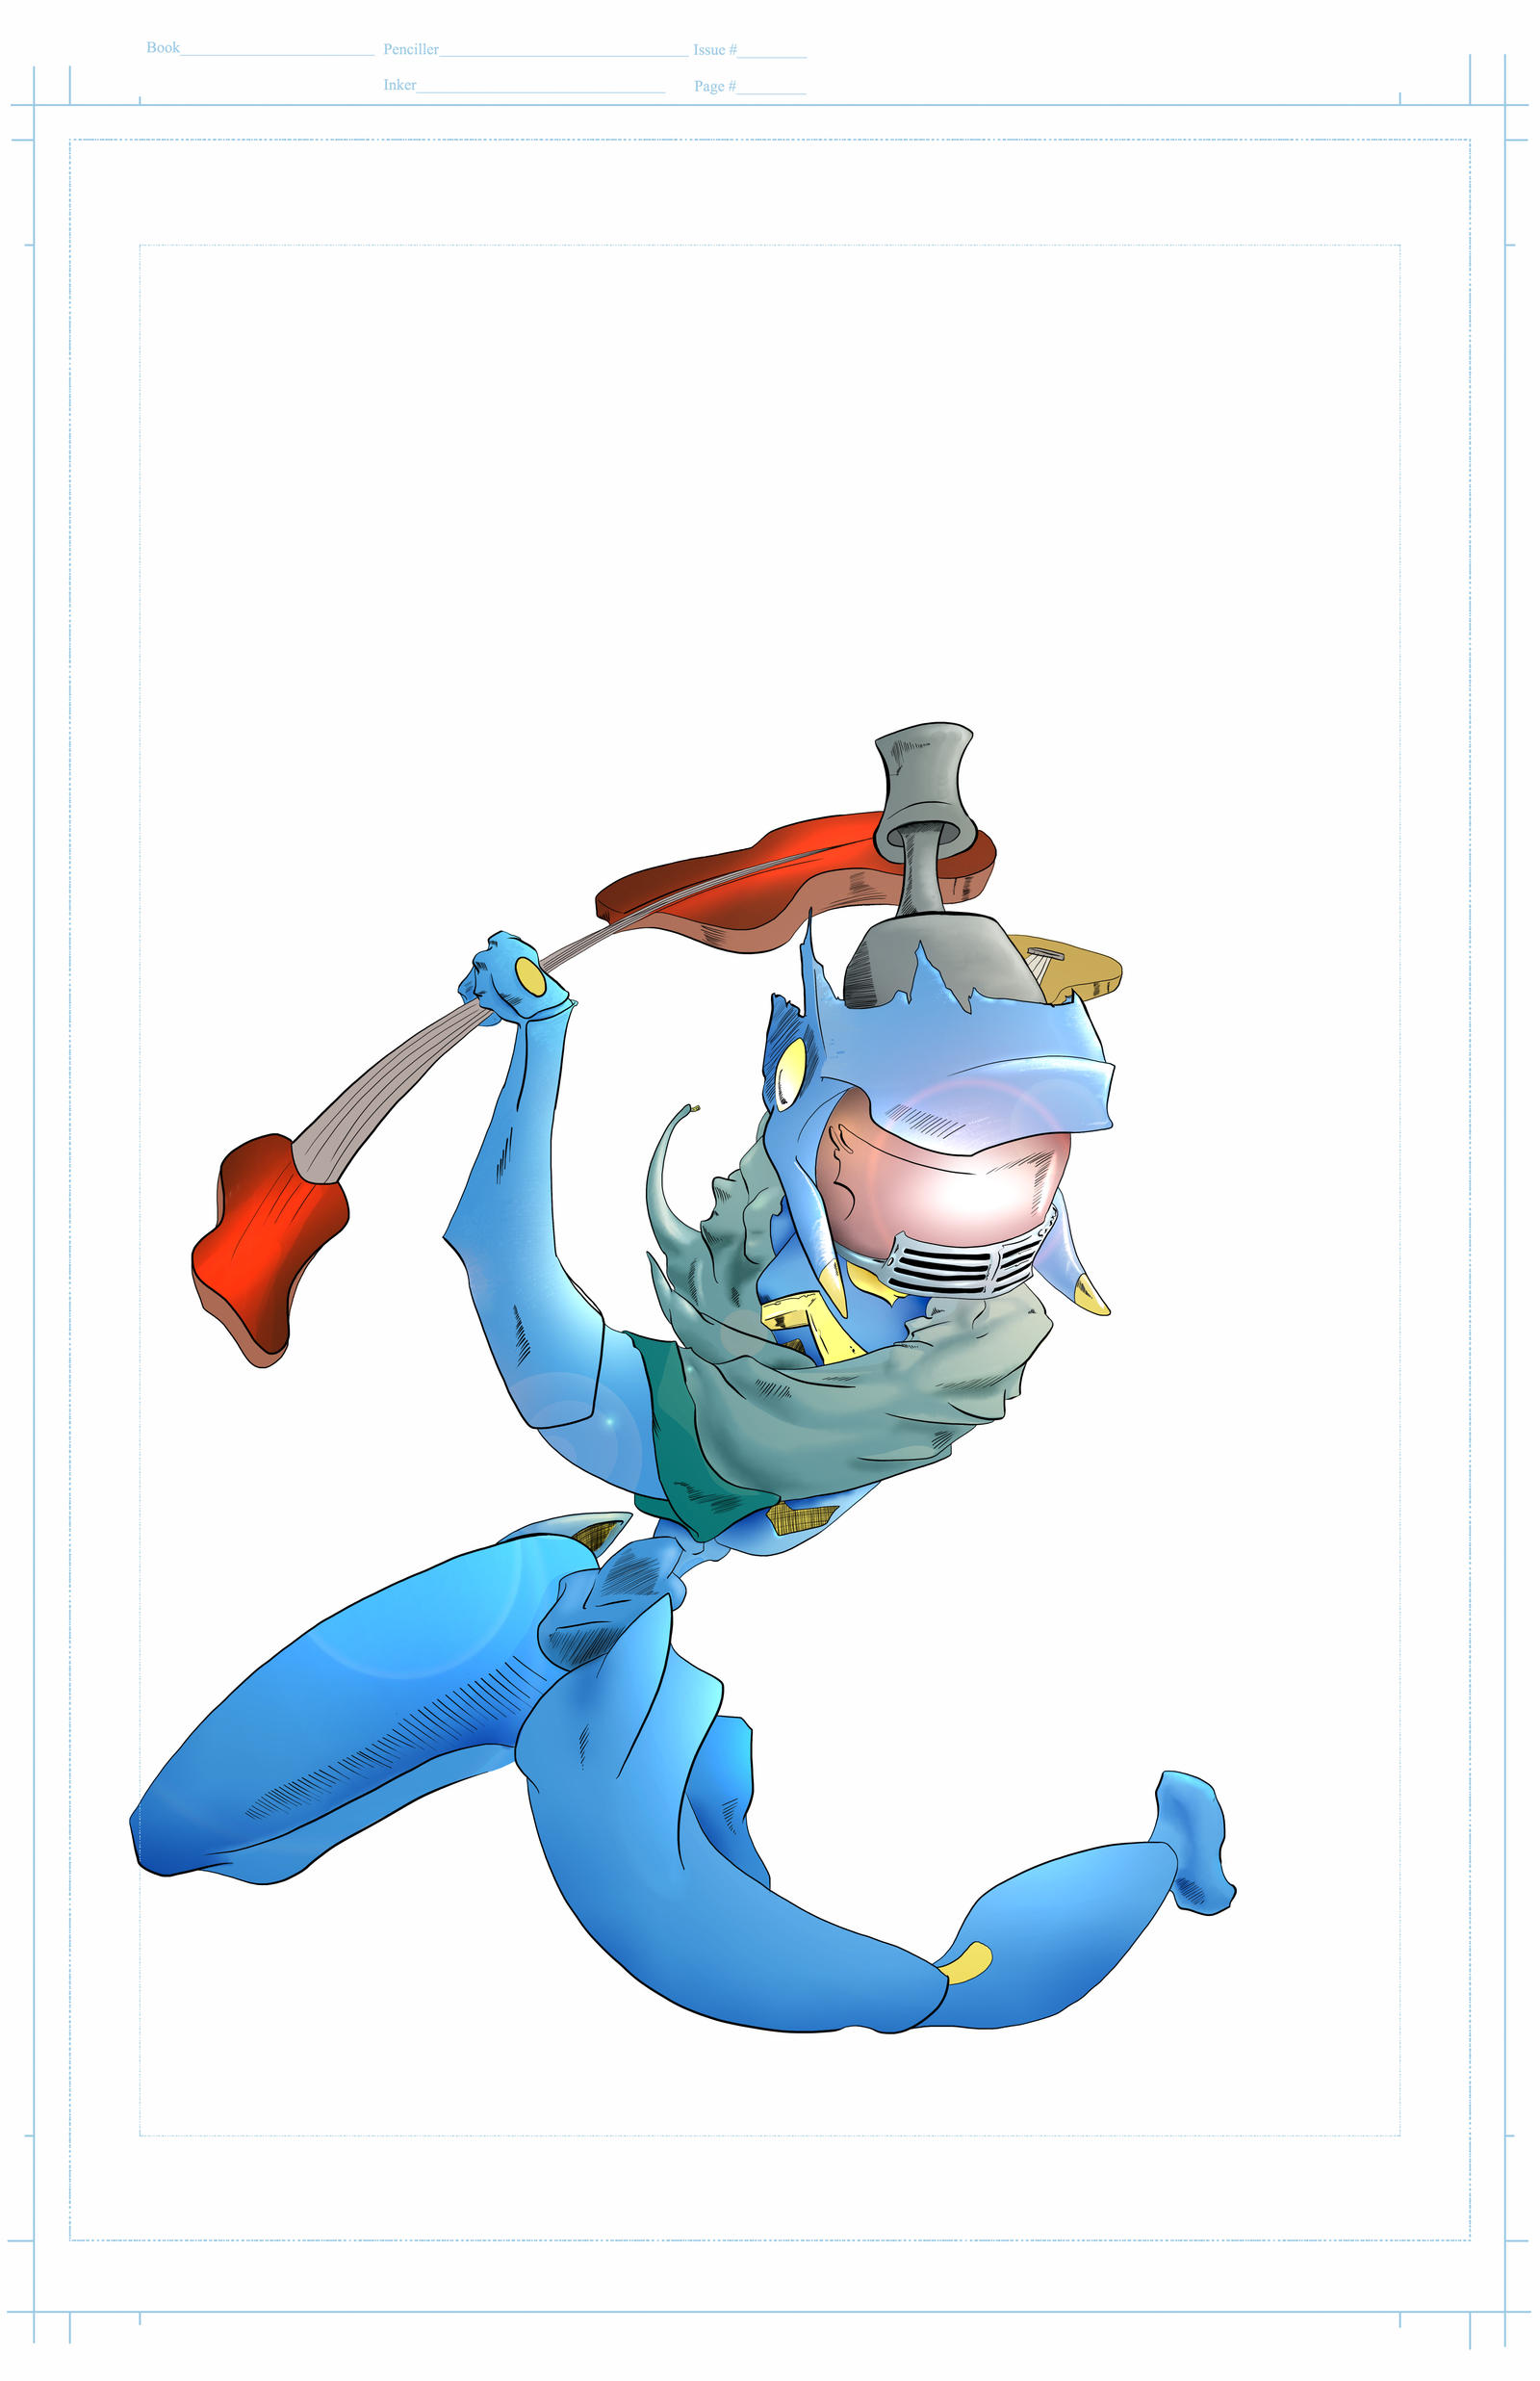 Canti by CoconutMikeNIke